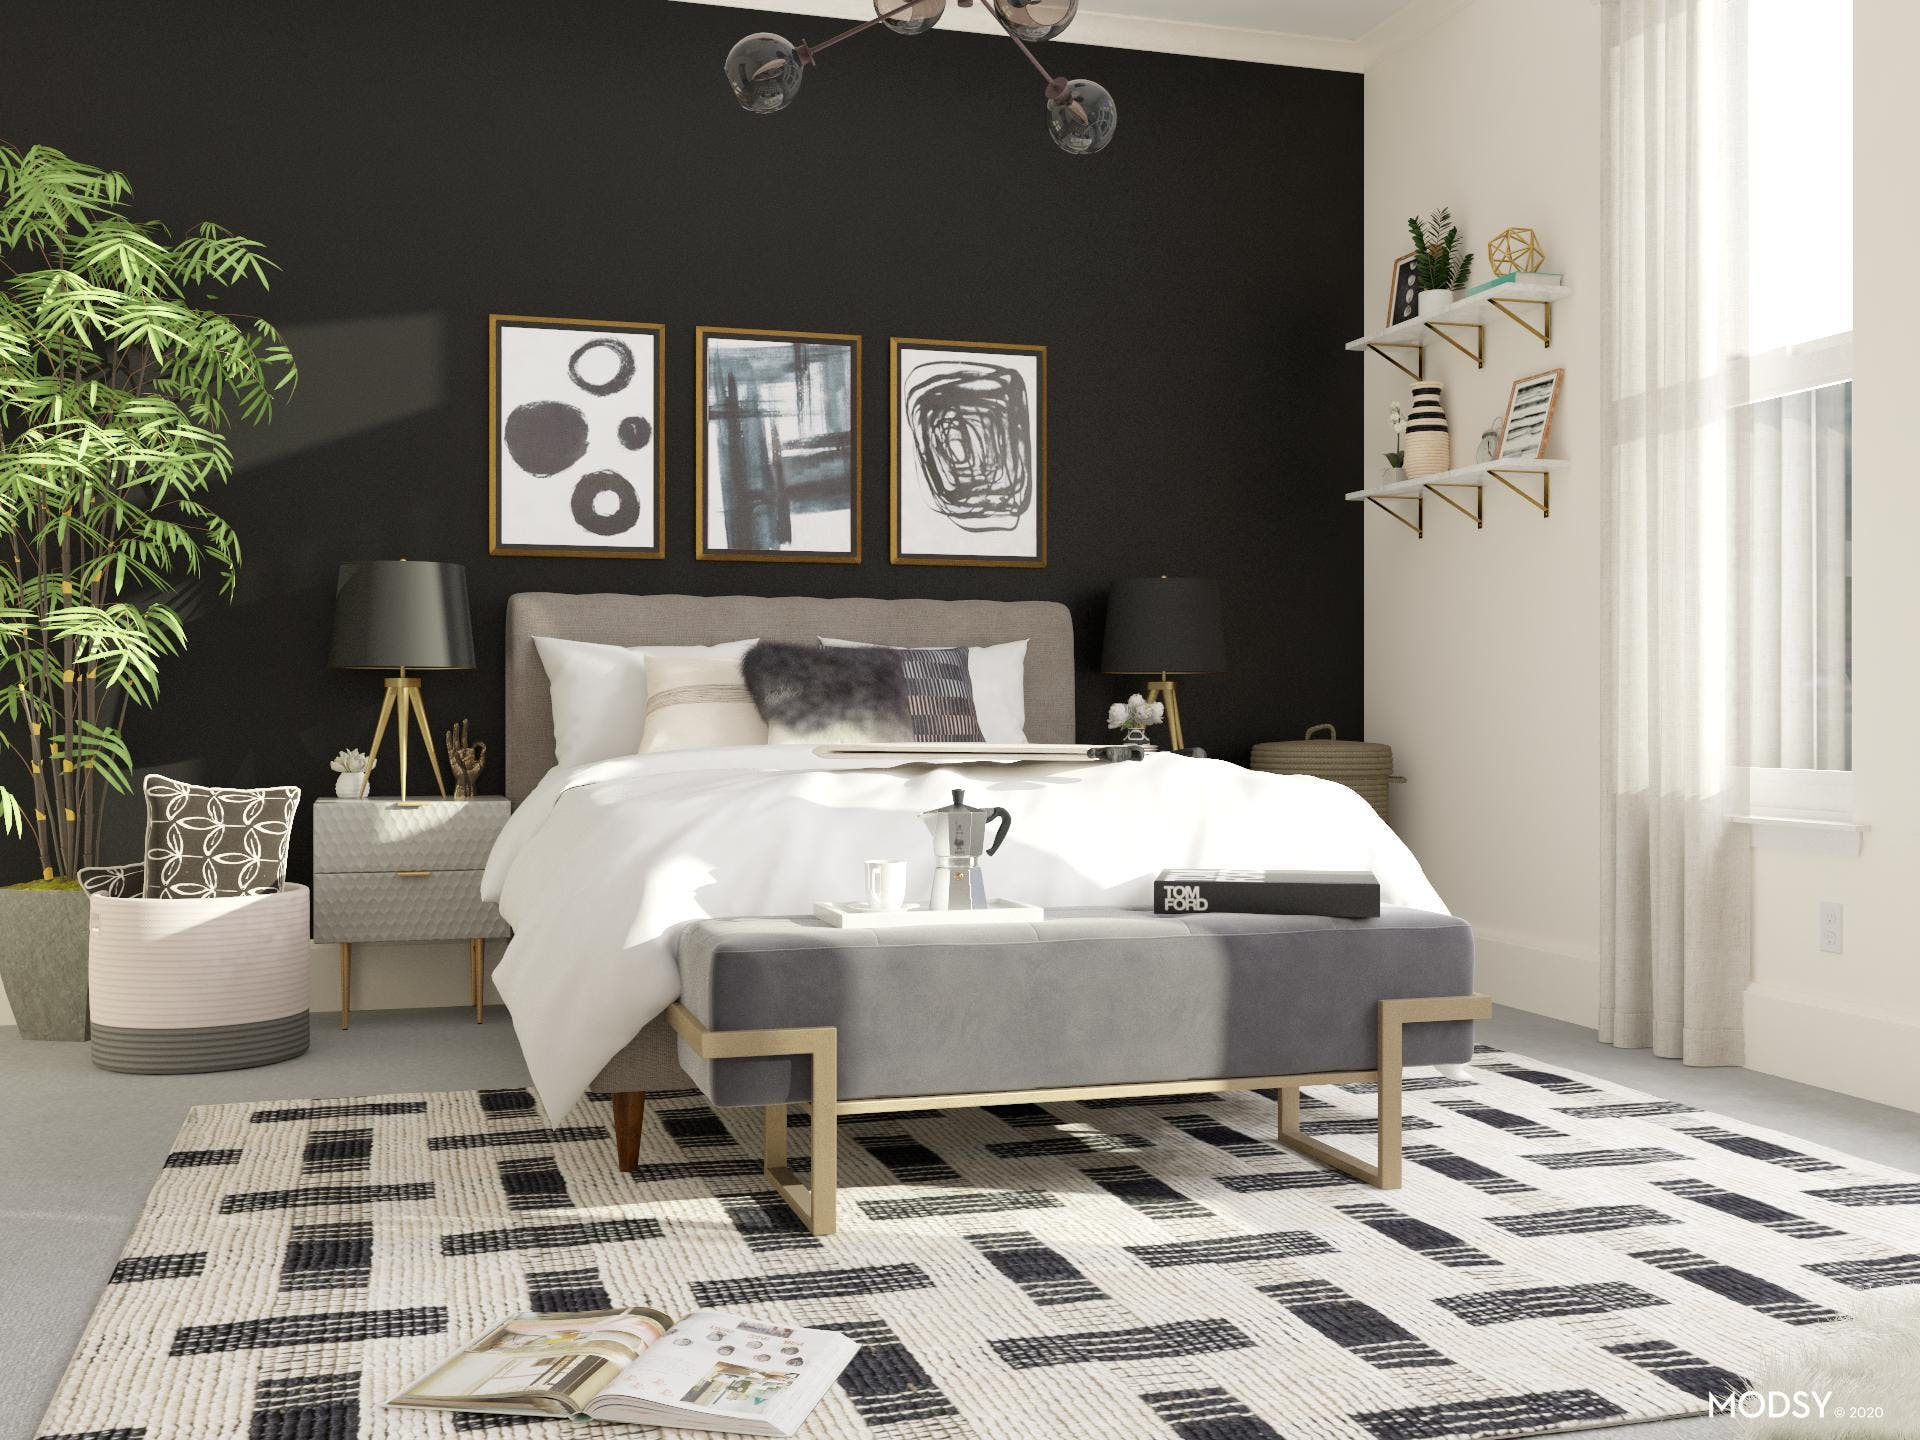 A luxurious black and white modern bedroom